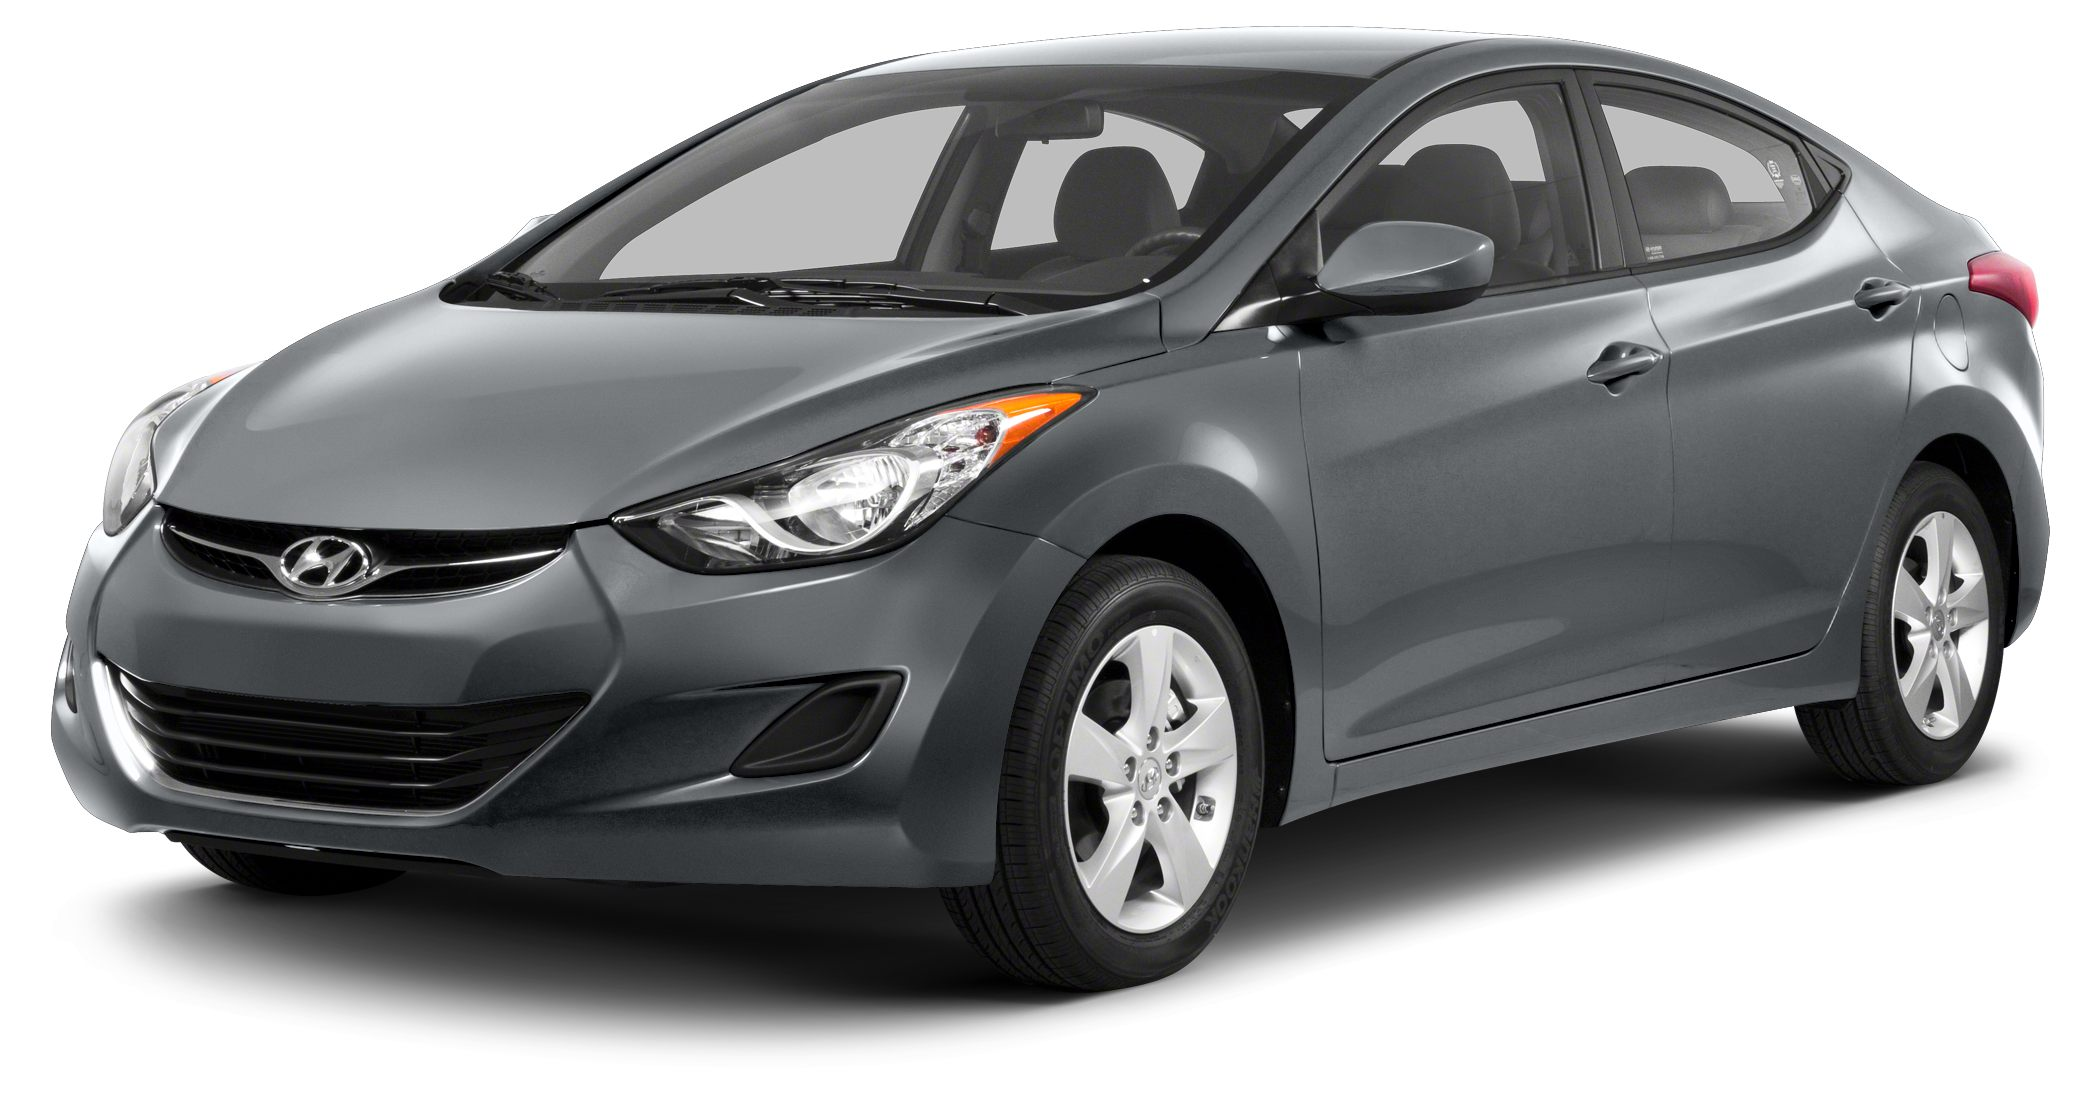 2013 Hyundai Elantra GLS  WHEN IT COMES TO EXCELLENCE IN USED CAR SALESYOU KNOW YOURE AT STA